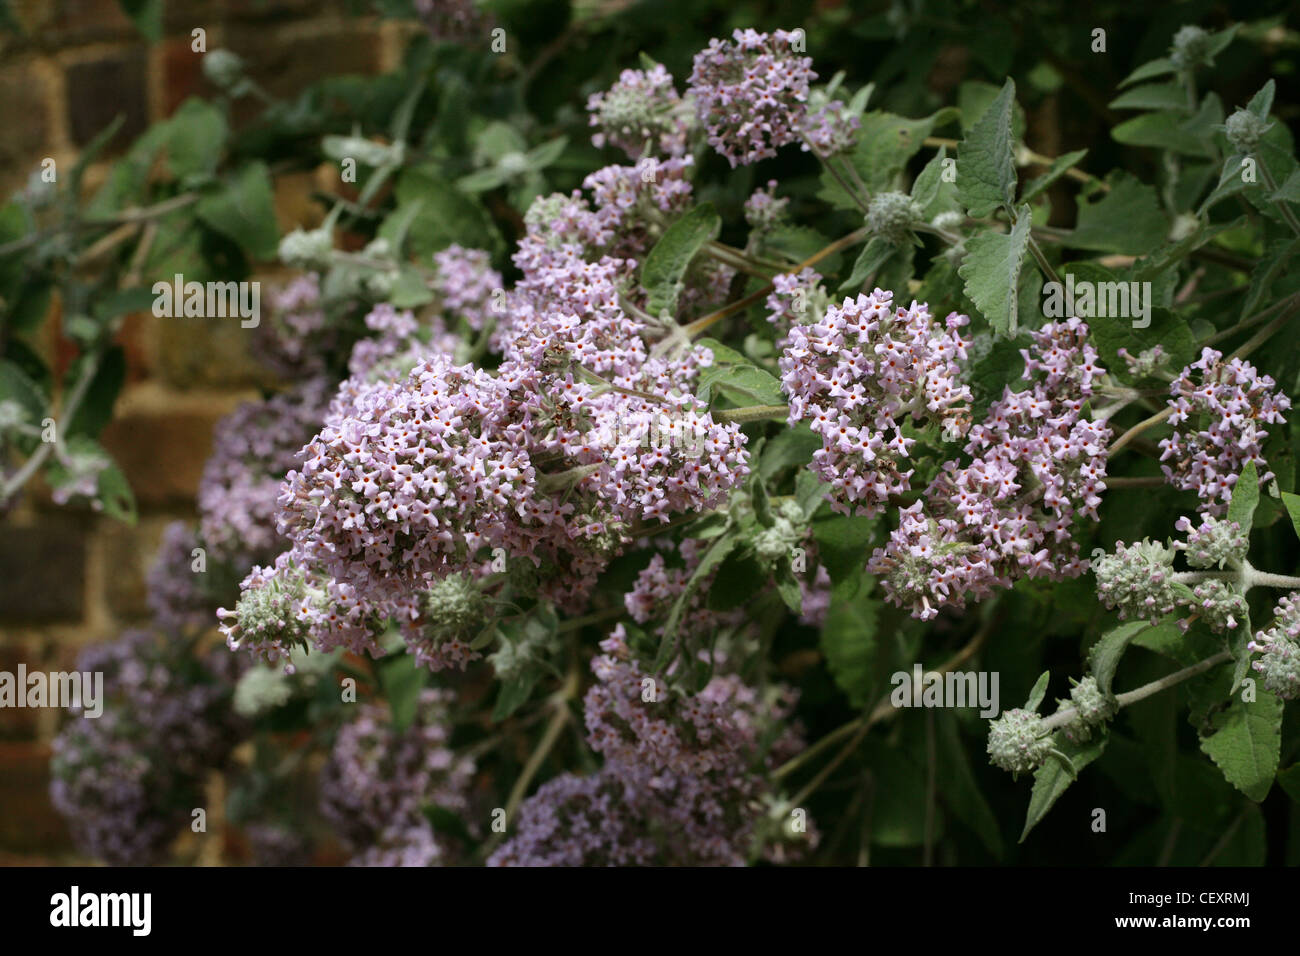 Himalayan Butterfly Bush, Buddleja crispa, Scrophulariaceae. Native to Afghanistan, Bhutan, North India, Nepal, - Stock Image